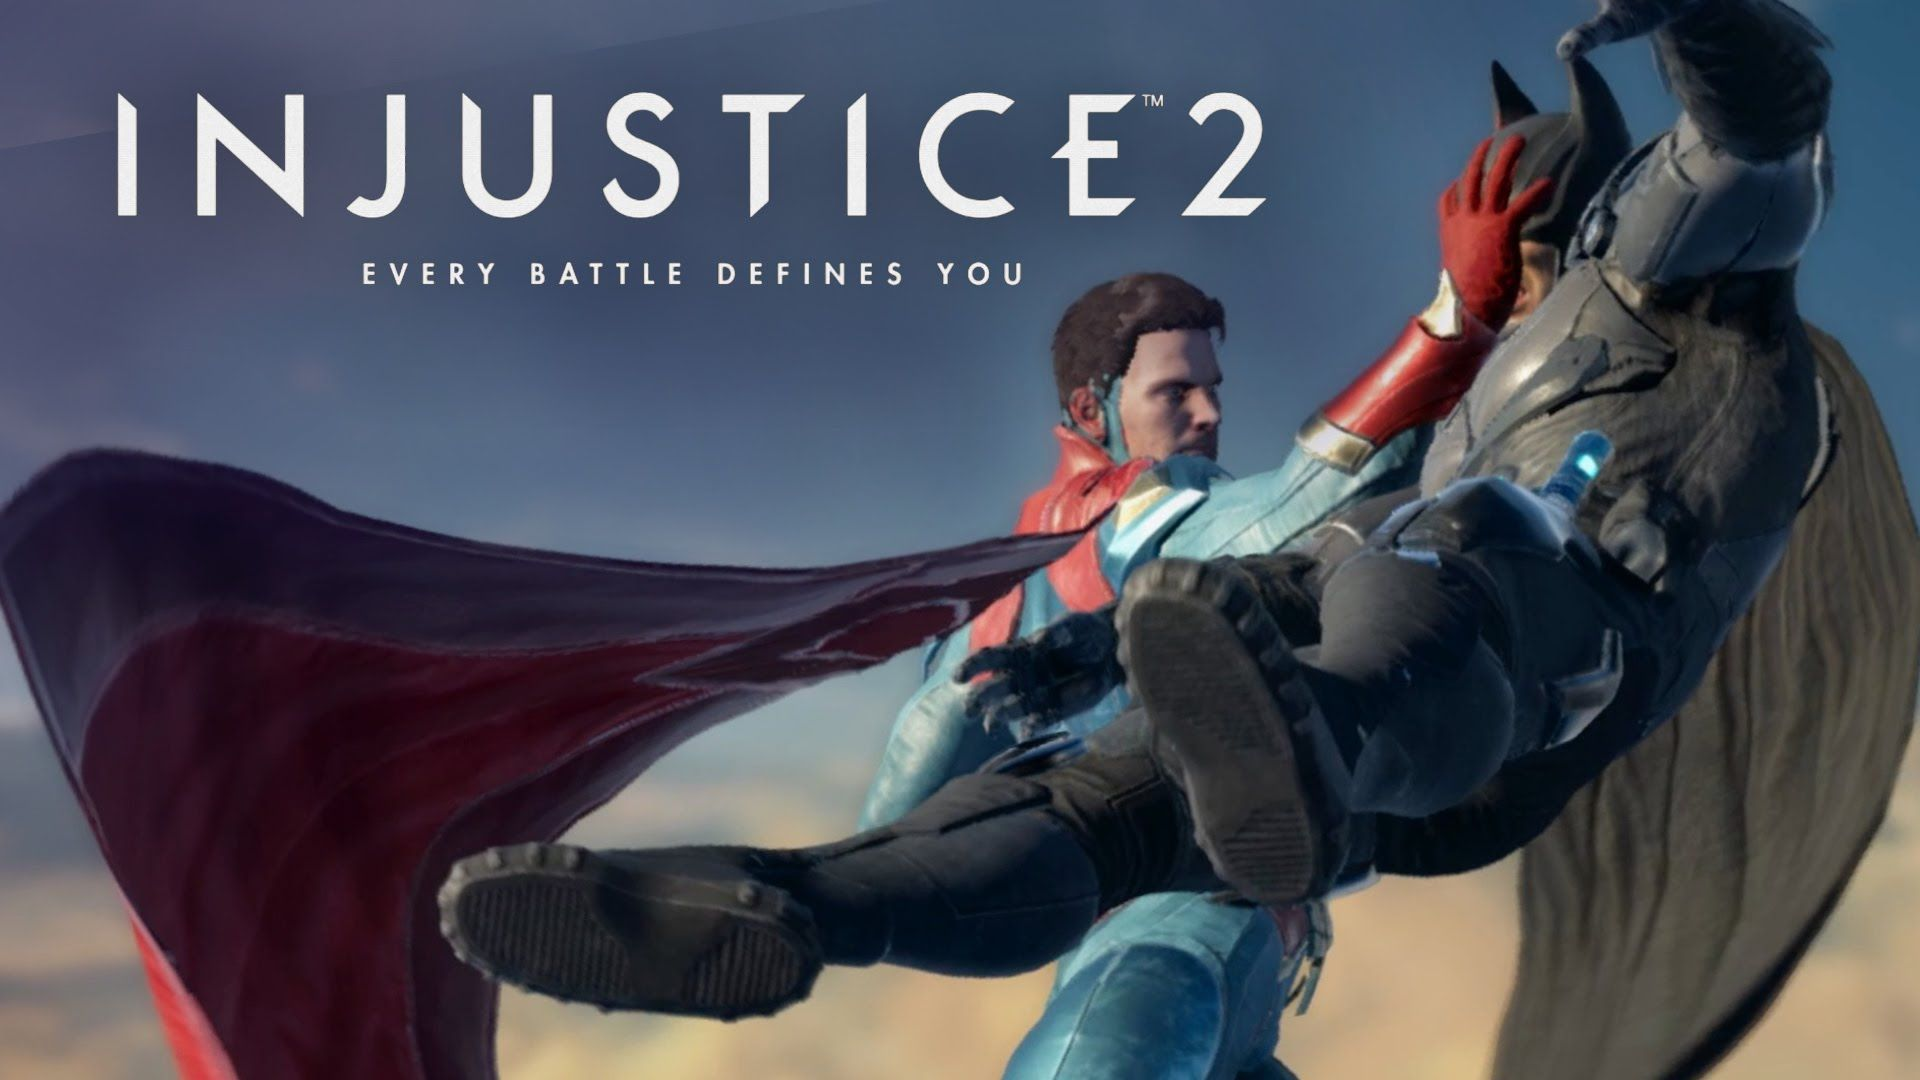 Injustice 2 Cheats & Tips Injustice 2 game, Injustice 2